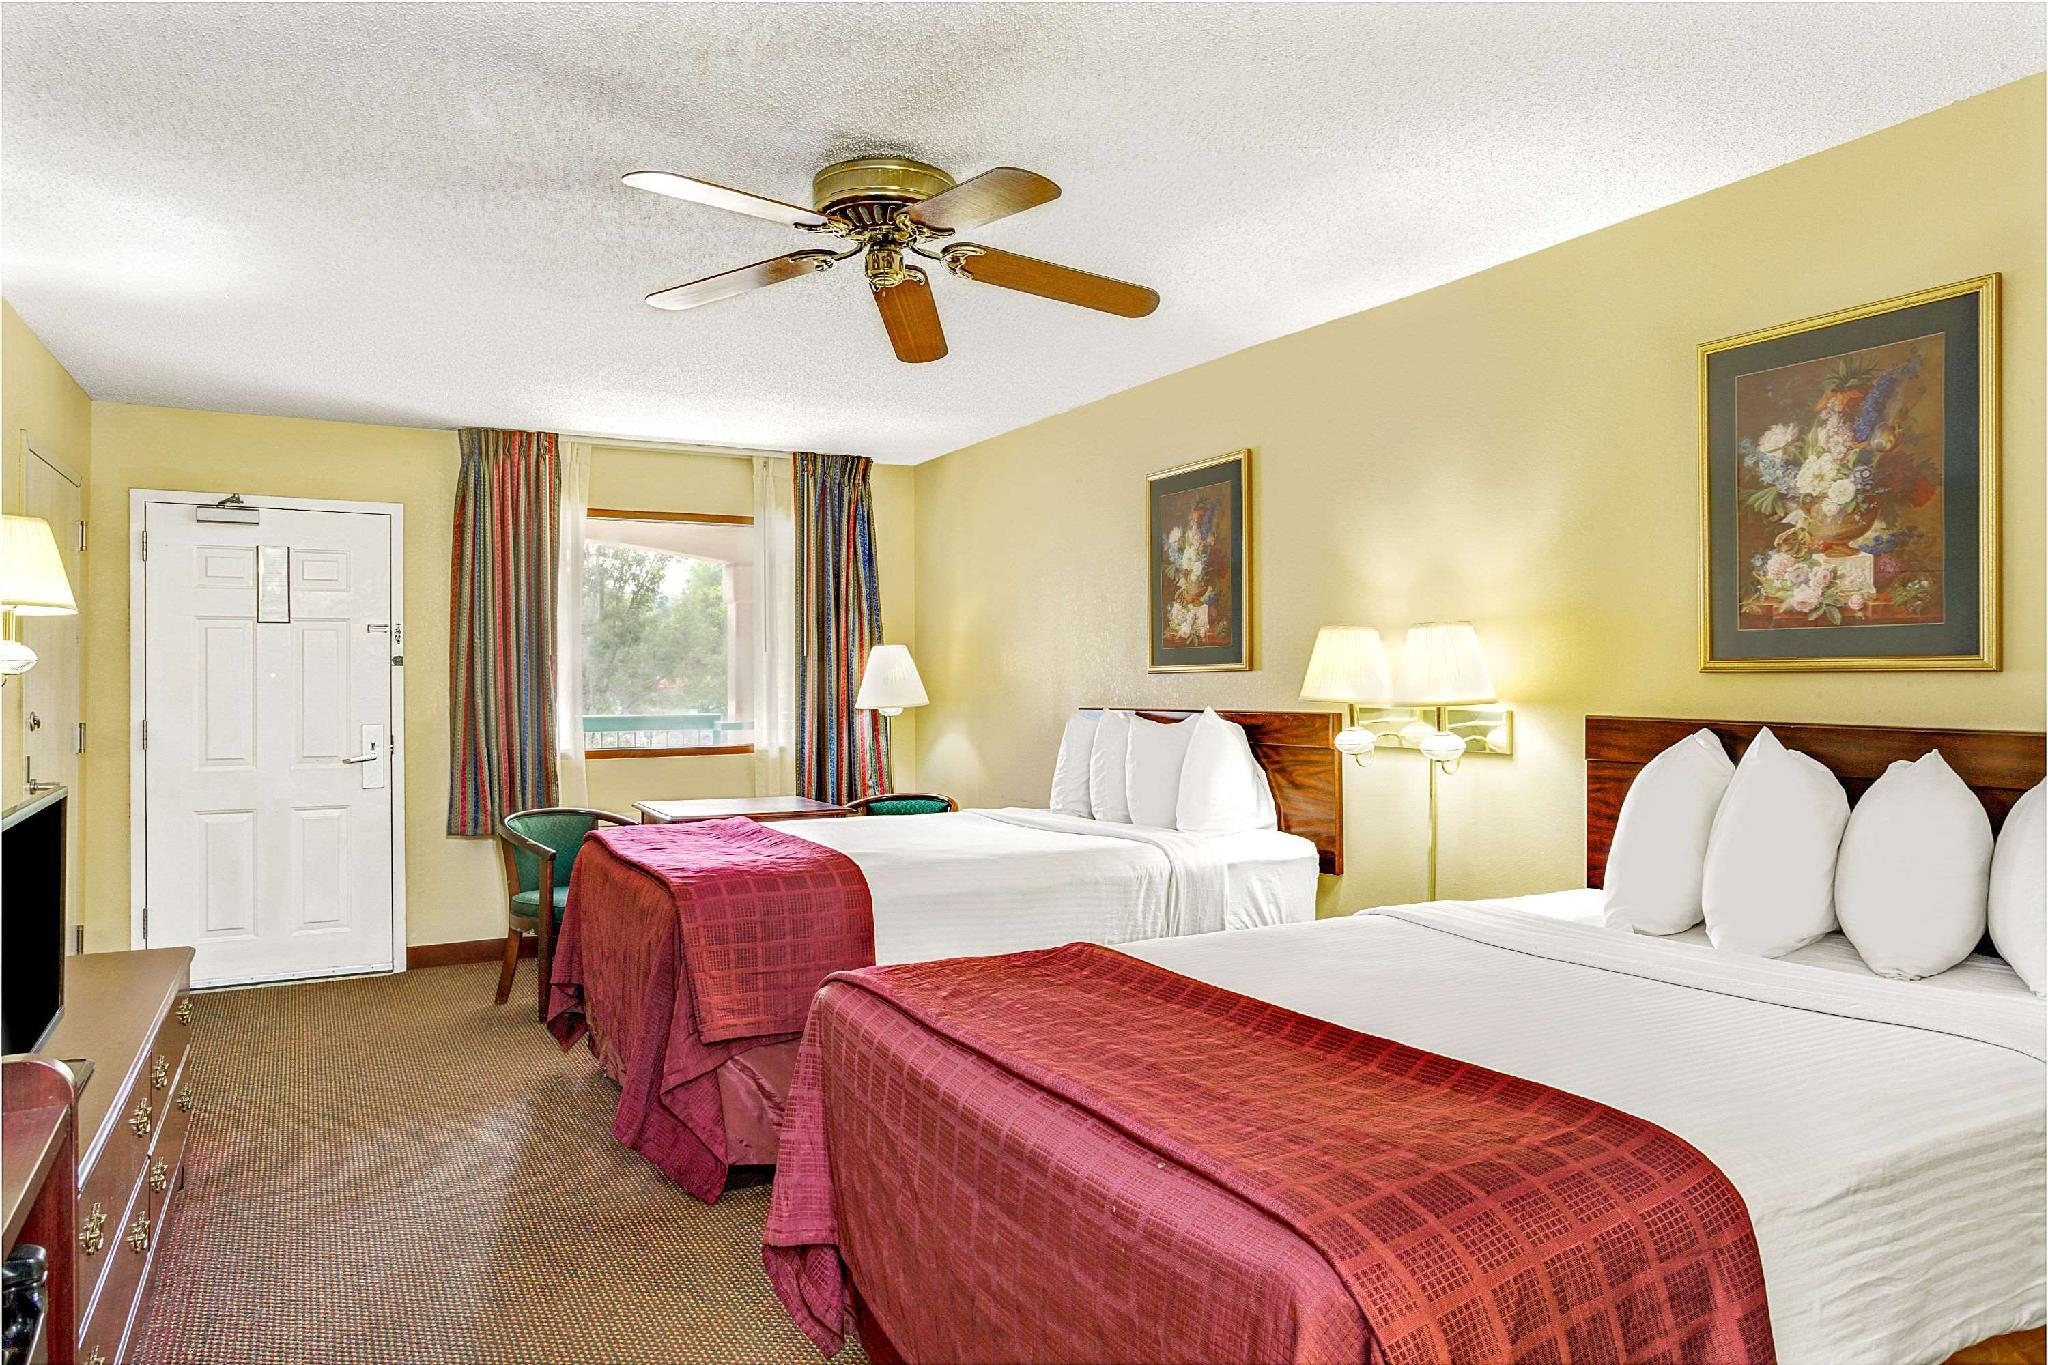 Days Inn & Suites by Wyndham Peachtree City, Fayette